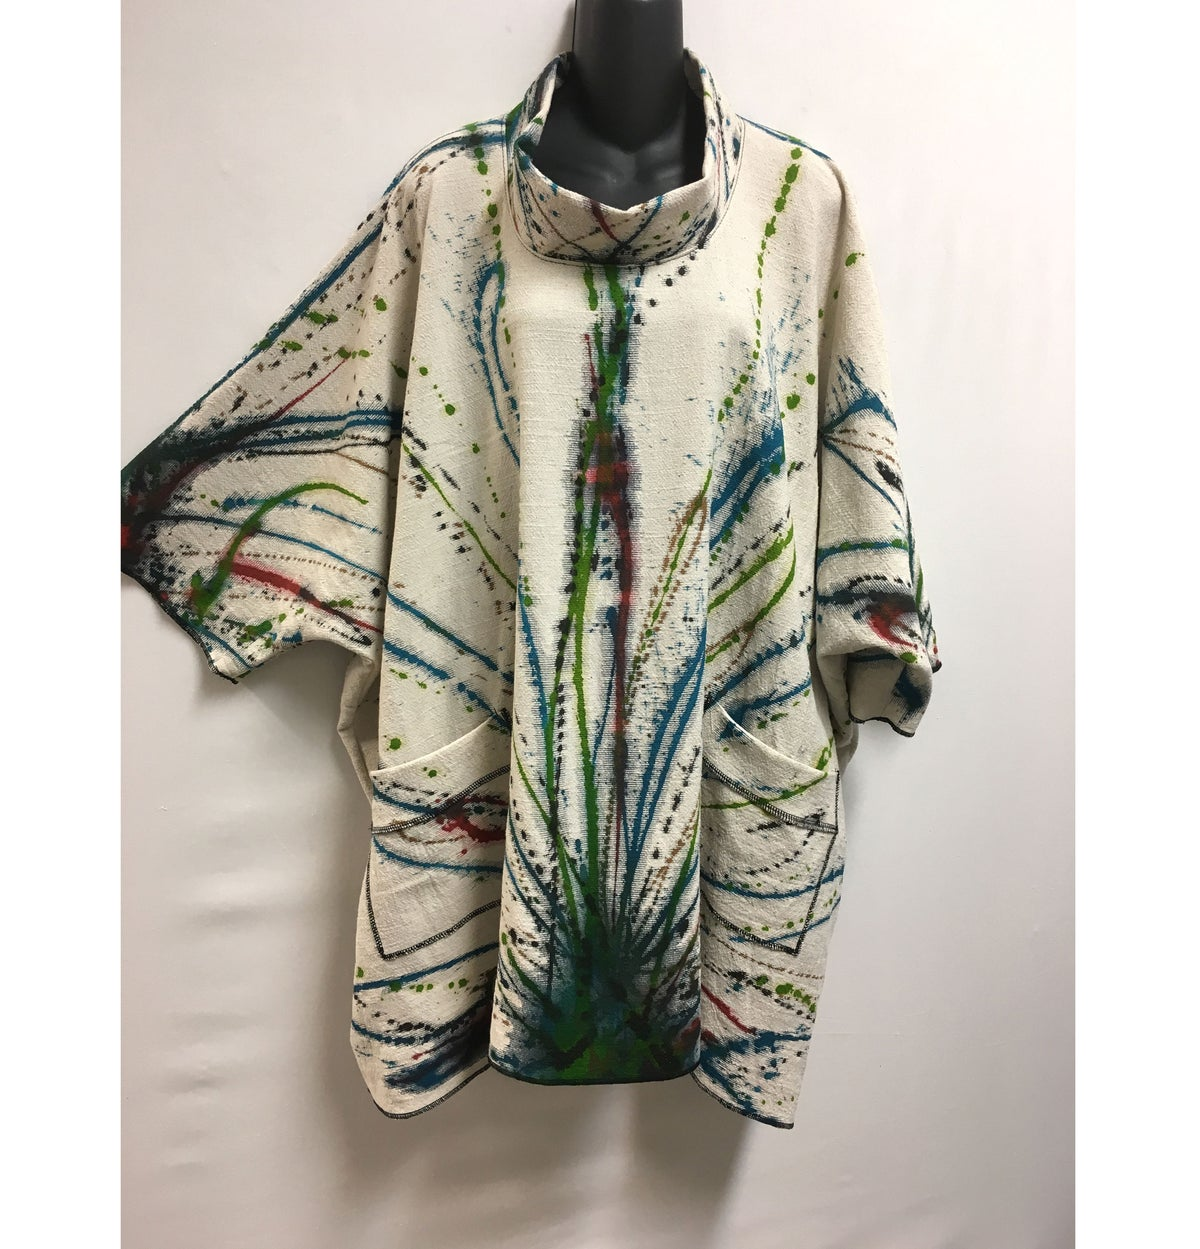 Image of Donna Tunic - 90%Cotton/10%Linen - Hand Painted Burst of Joy Design